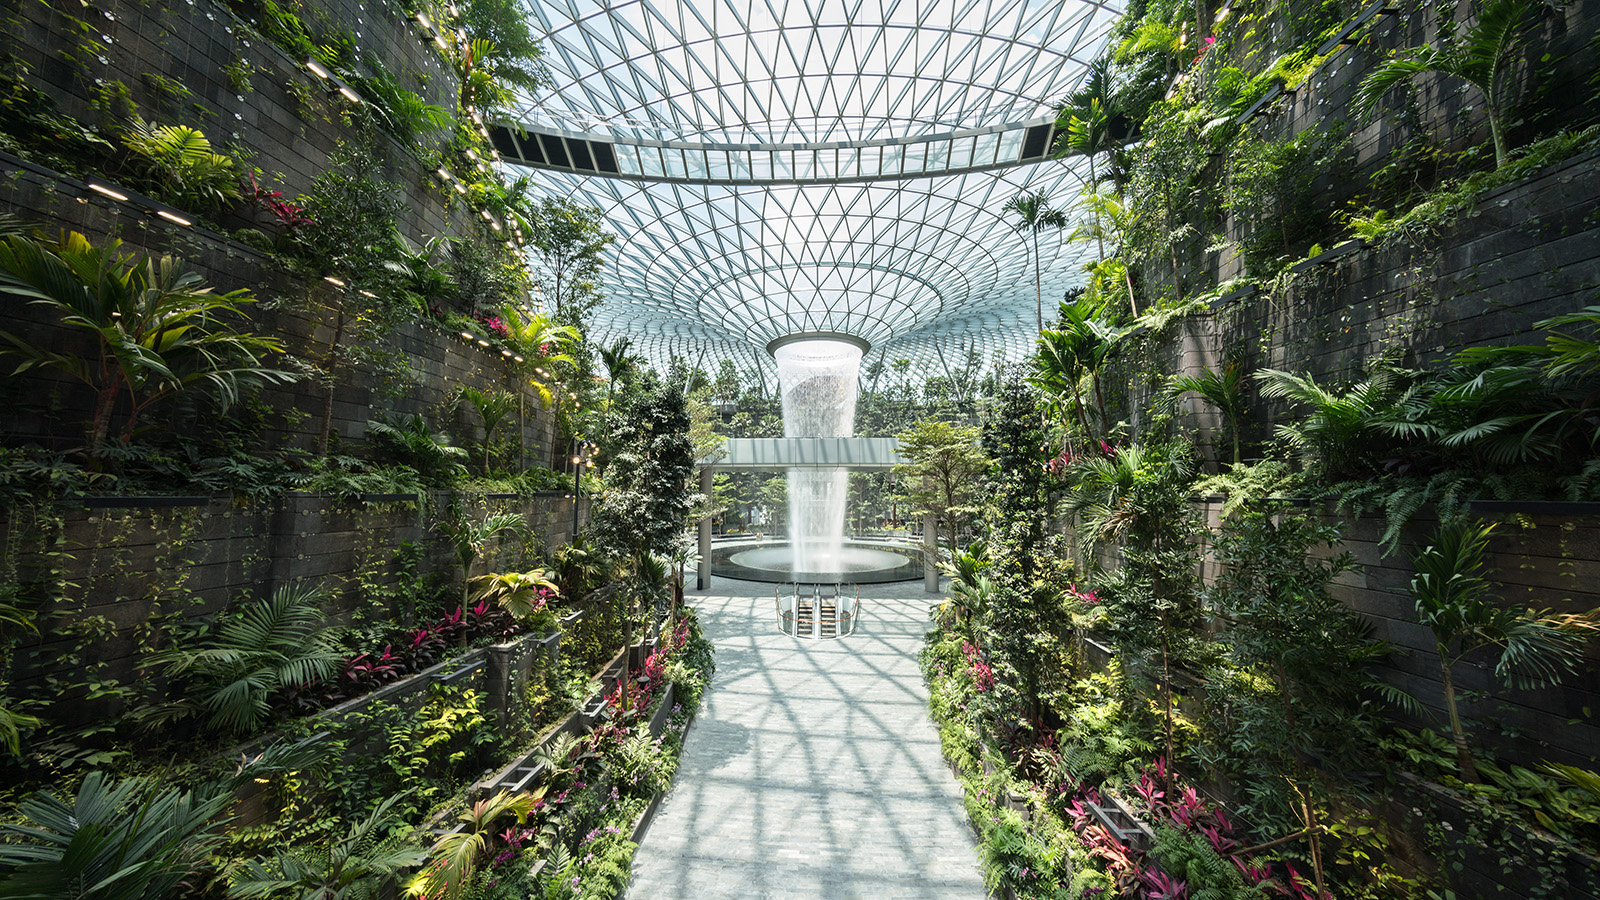 Jewel Changi Airport Singapore: Your guide to this